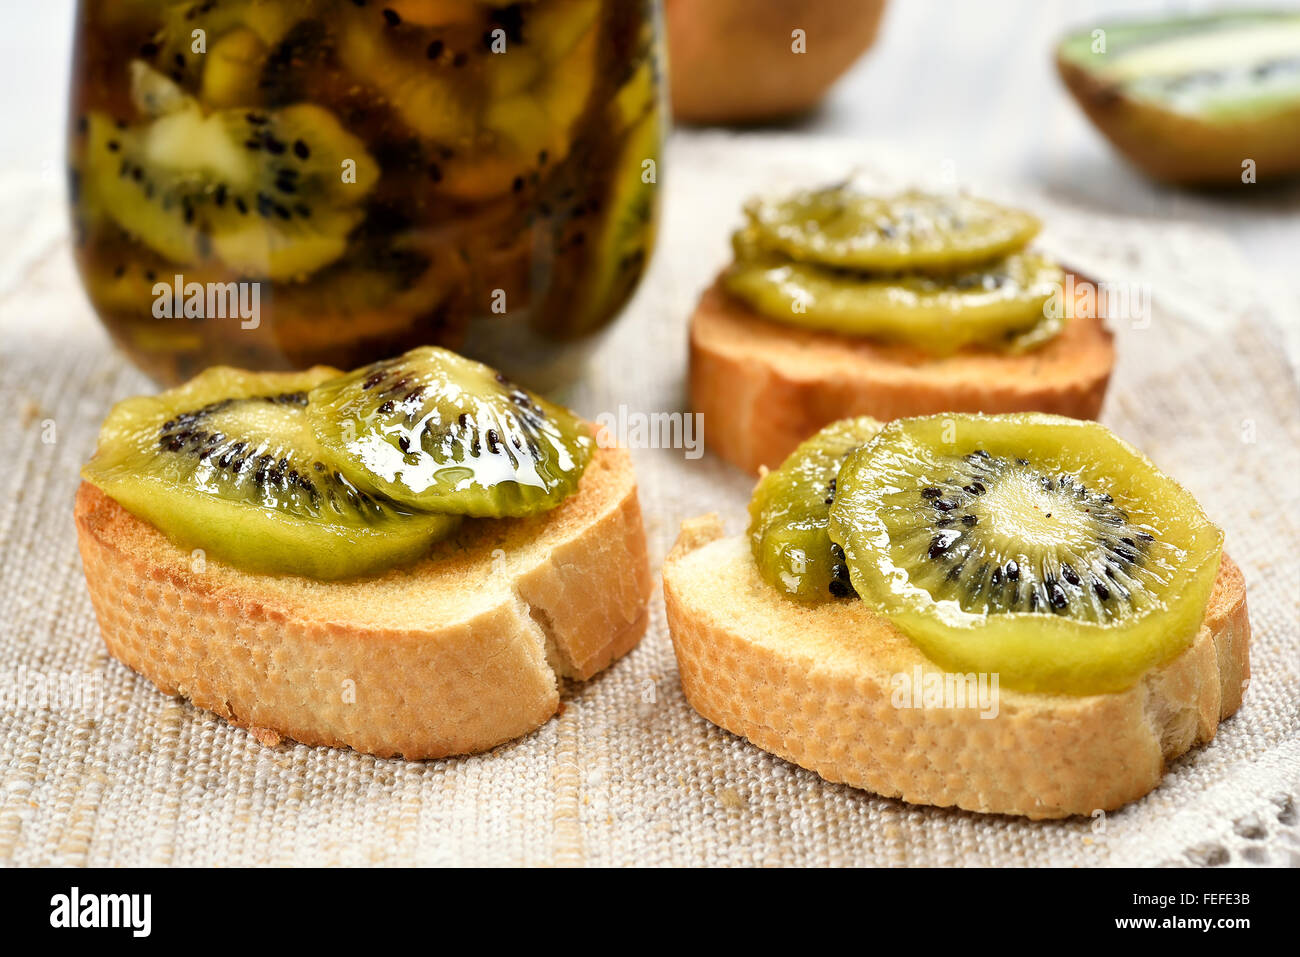 Sandwiches with canned kiwi, close up view - Stock Image